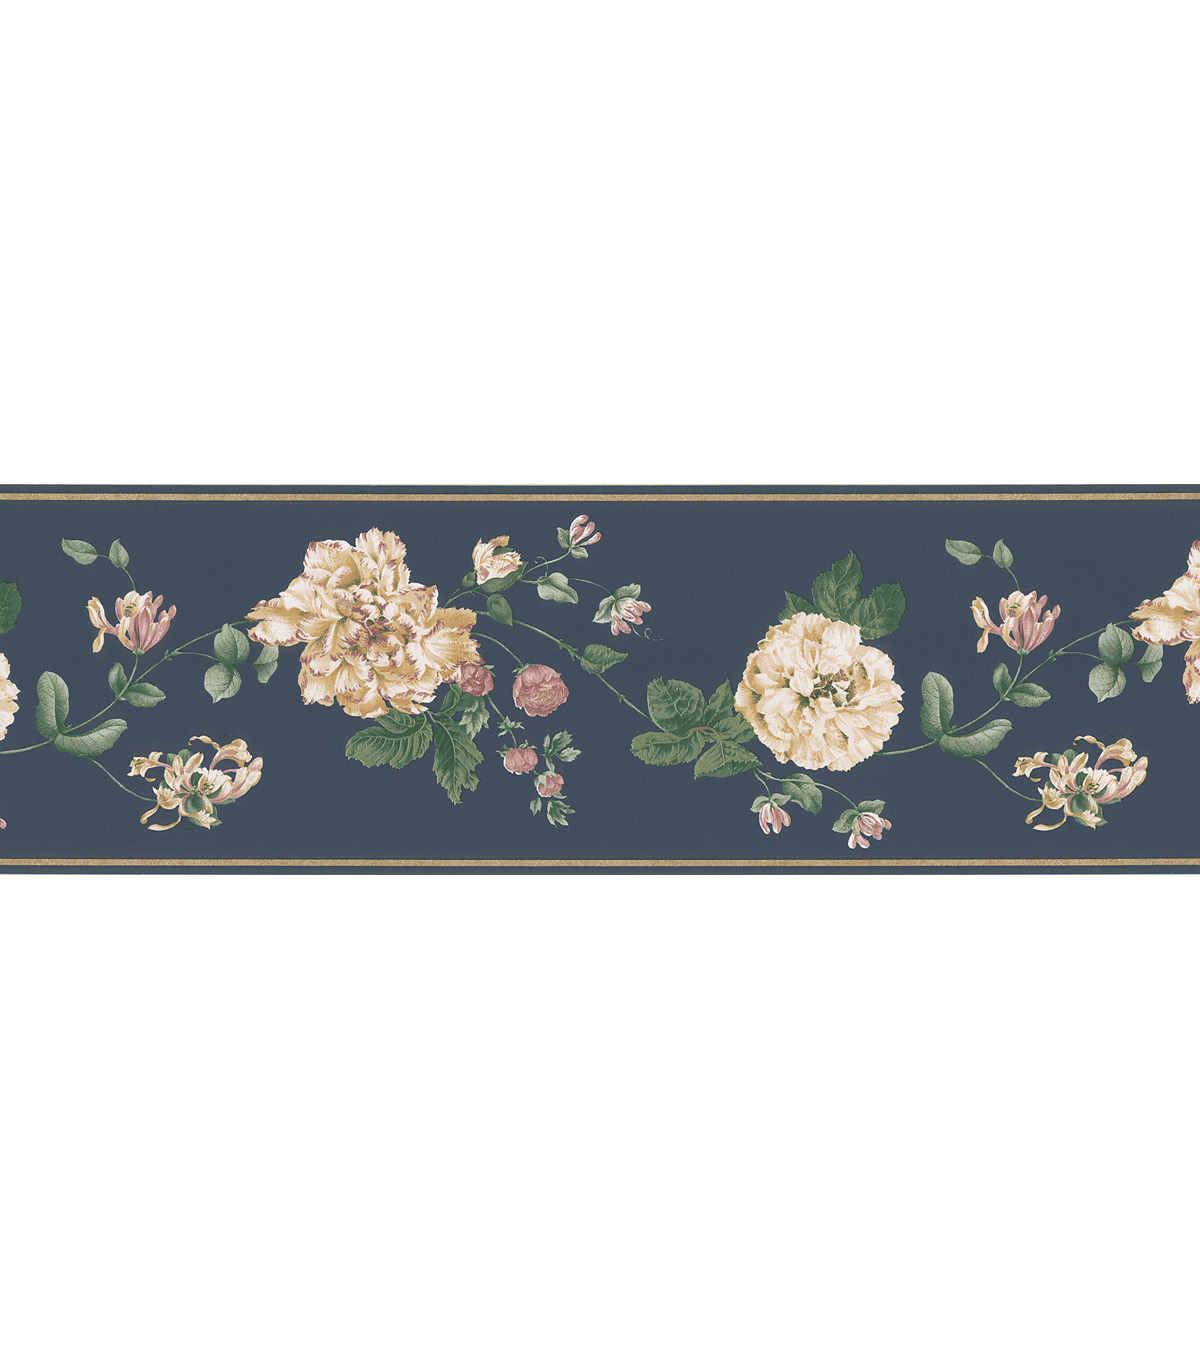 Floral Trail Wallpaper Border, Navy